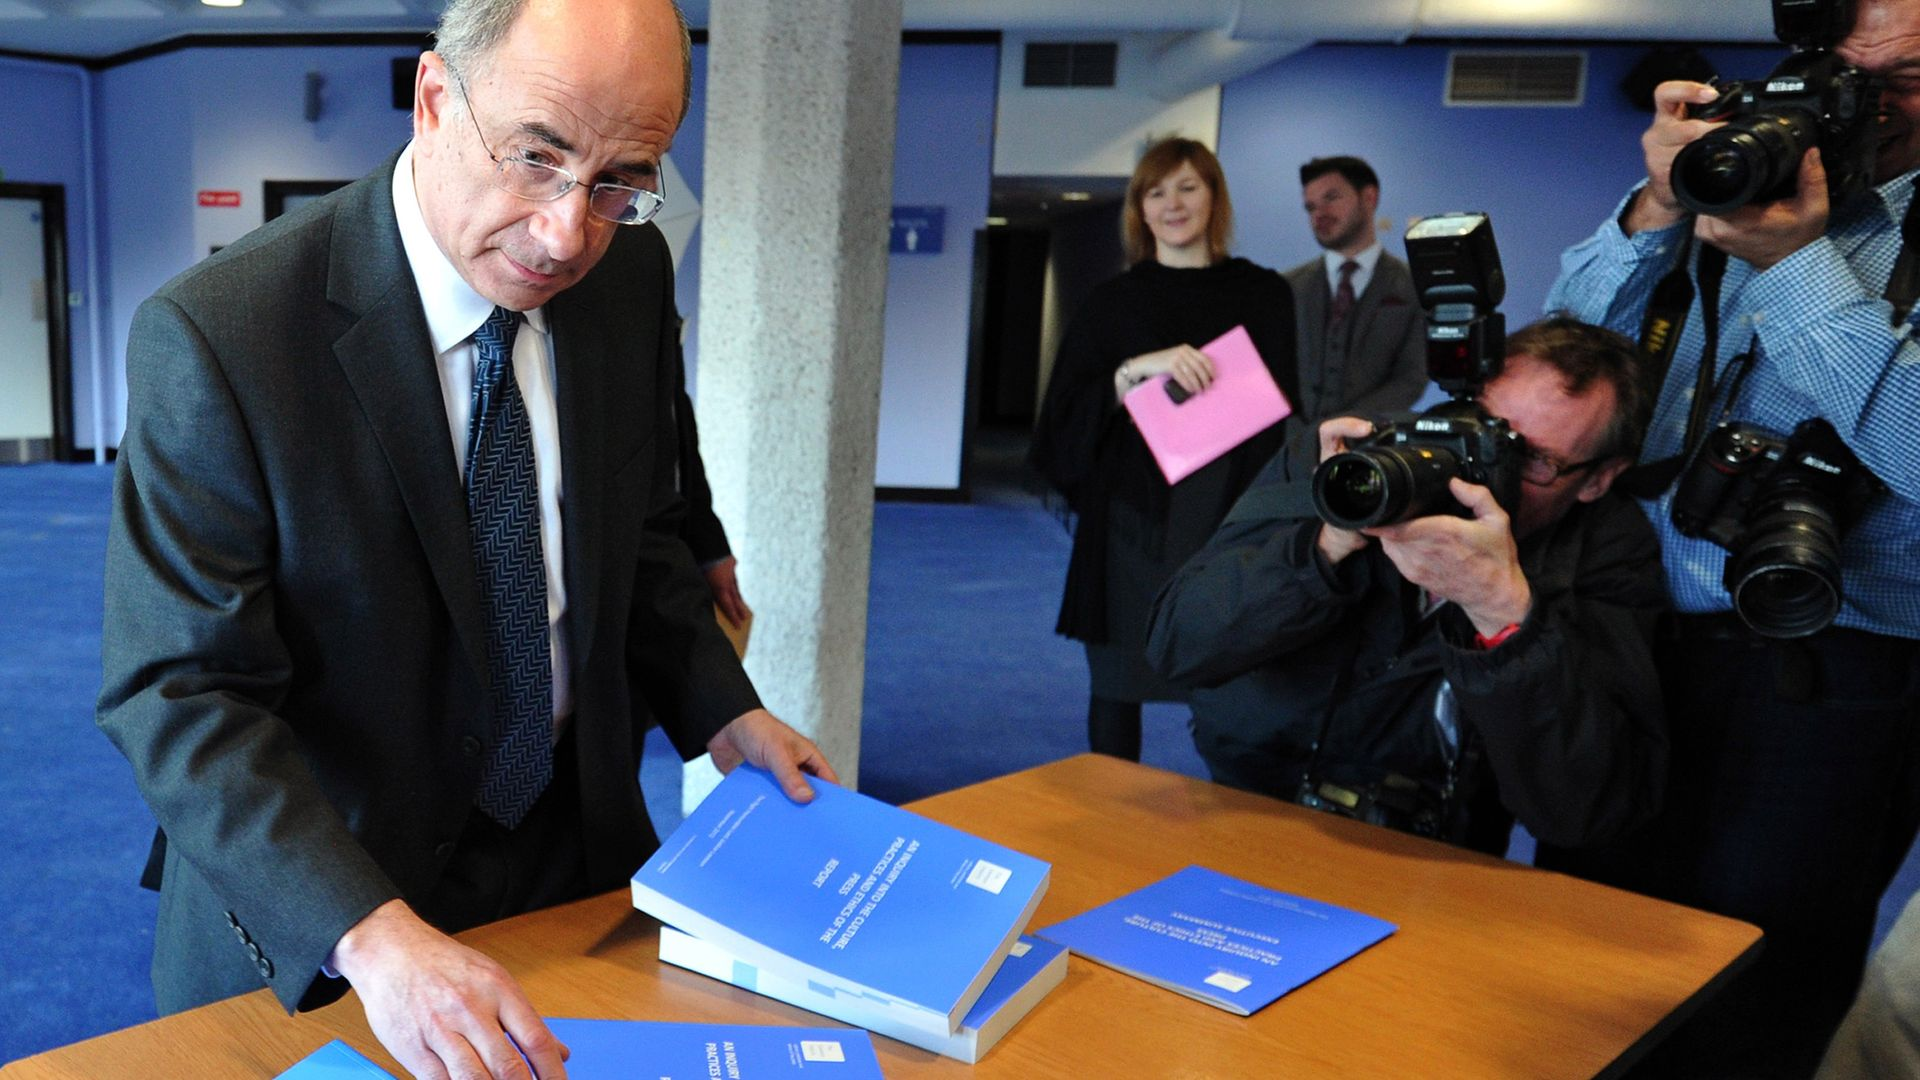 Lord Justice Leveson arranges copies of the Summary of the Leveson Report. Photo: Carl Court/AFP via Getty Images - Credit: AFP via Getty Images